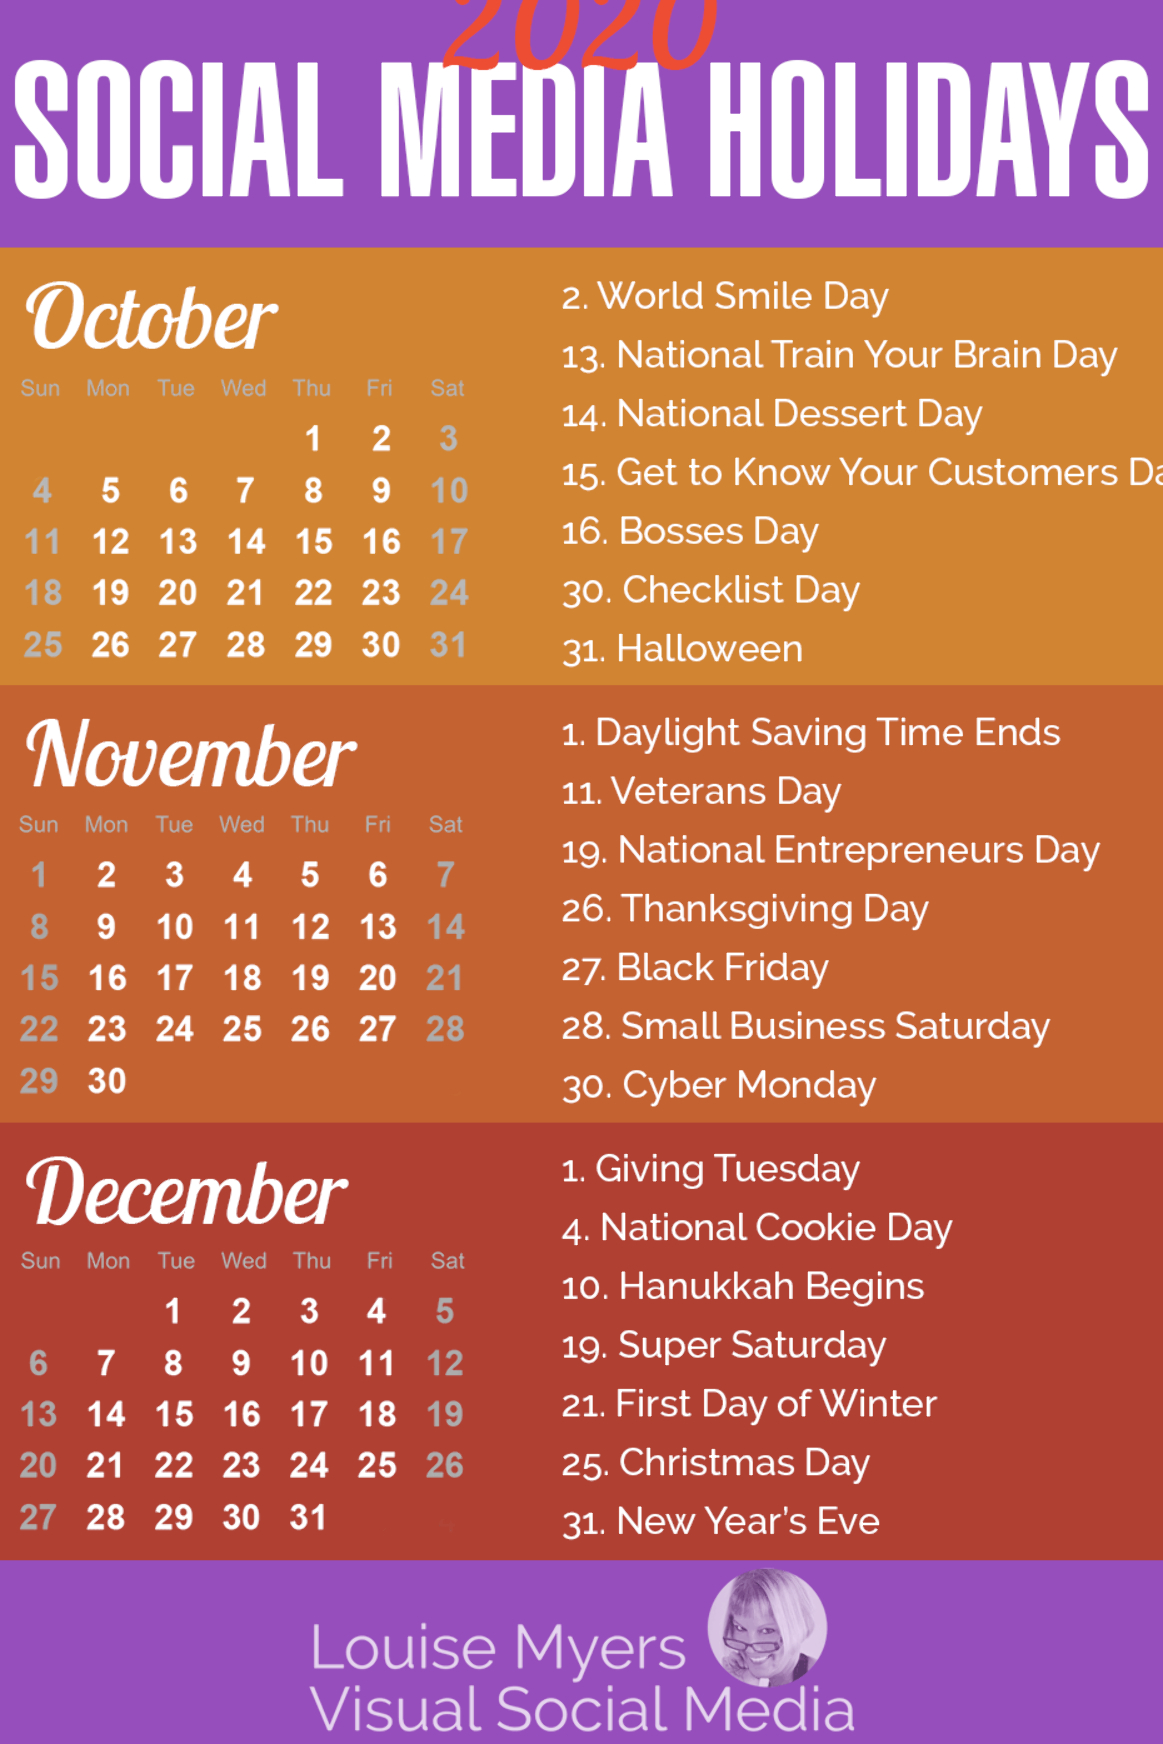 Social Media Marketing Tips: These Autumn 2020 Holidays Are in The Ultimate Social Media Holiday Calendar For 2020